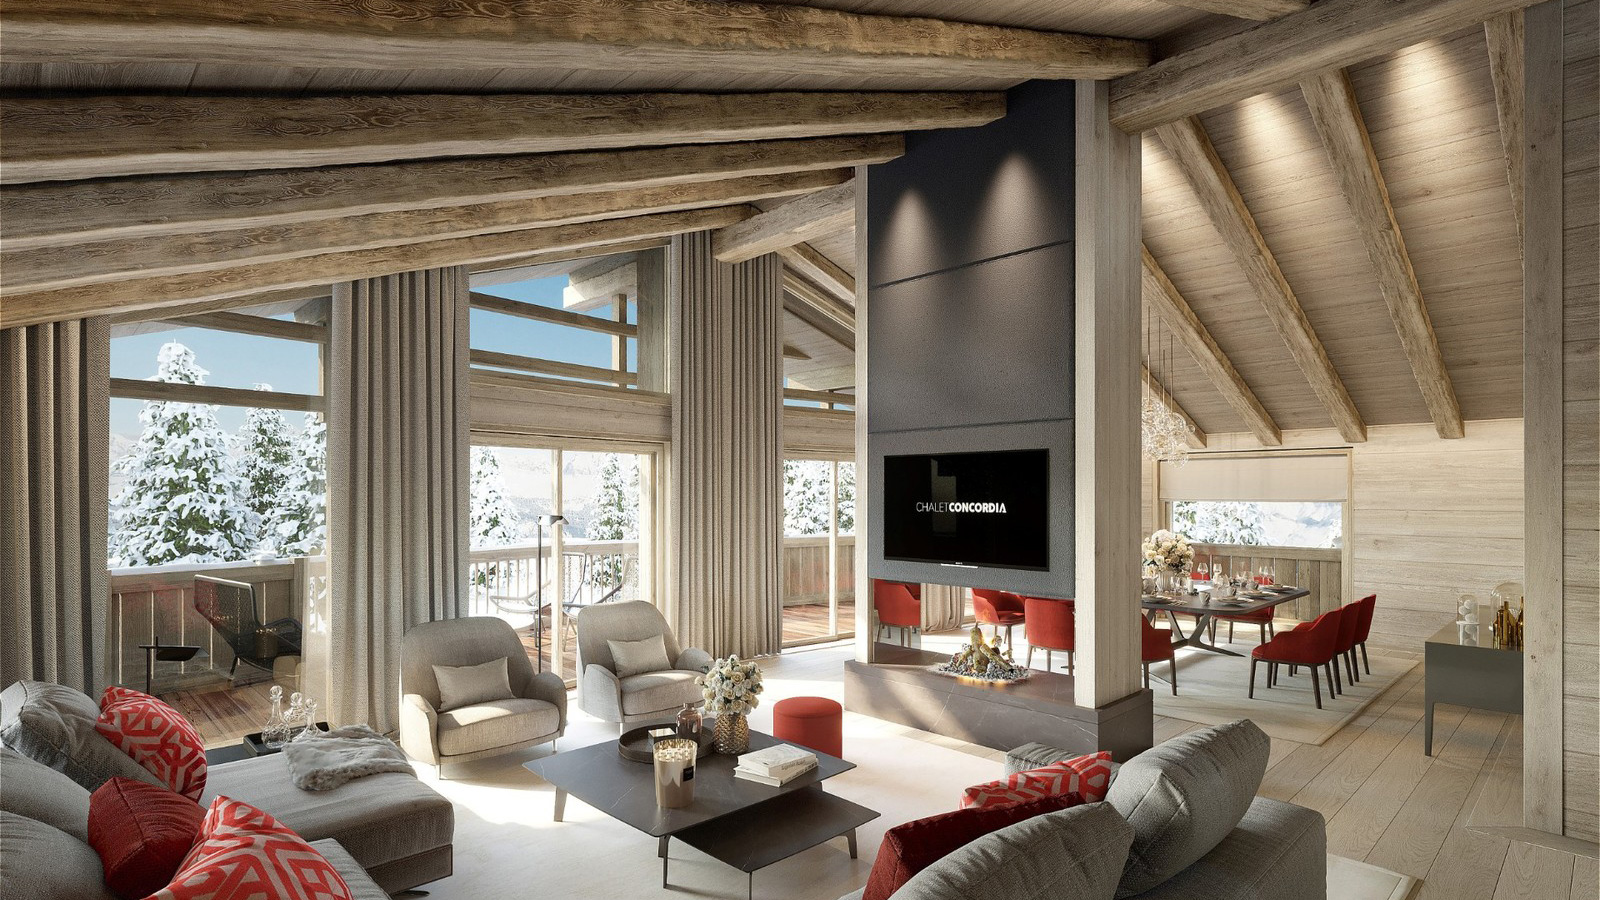 Chalet Concordia Chalet, France